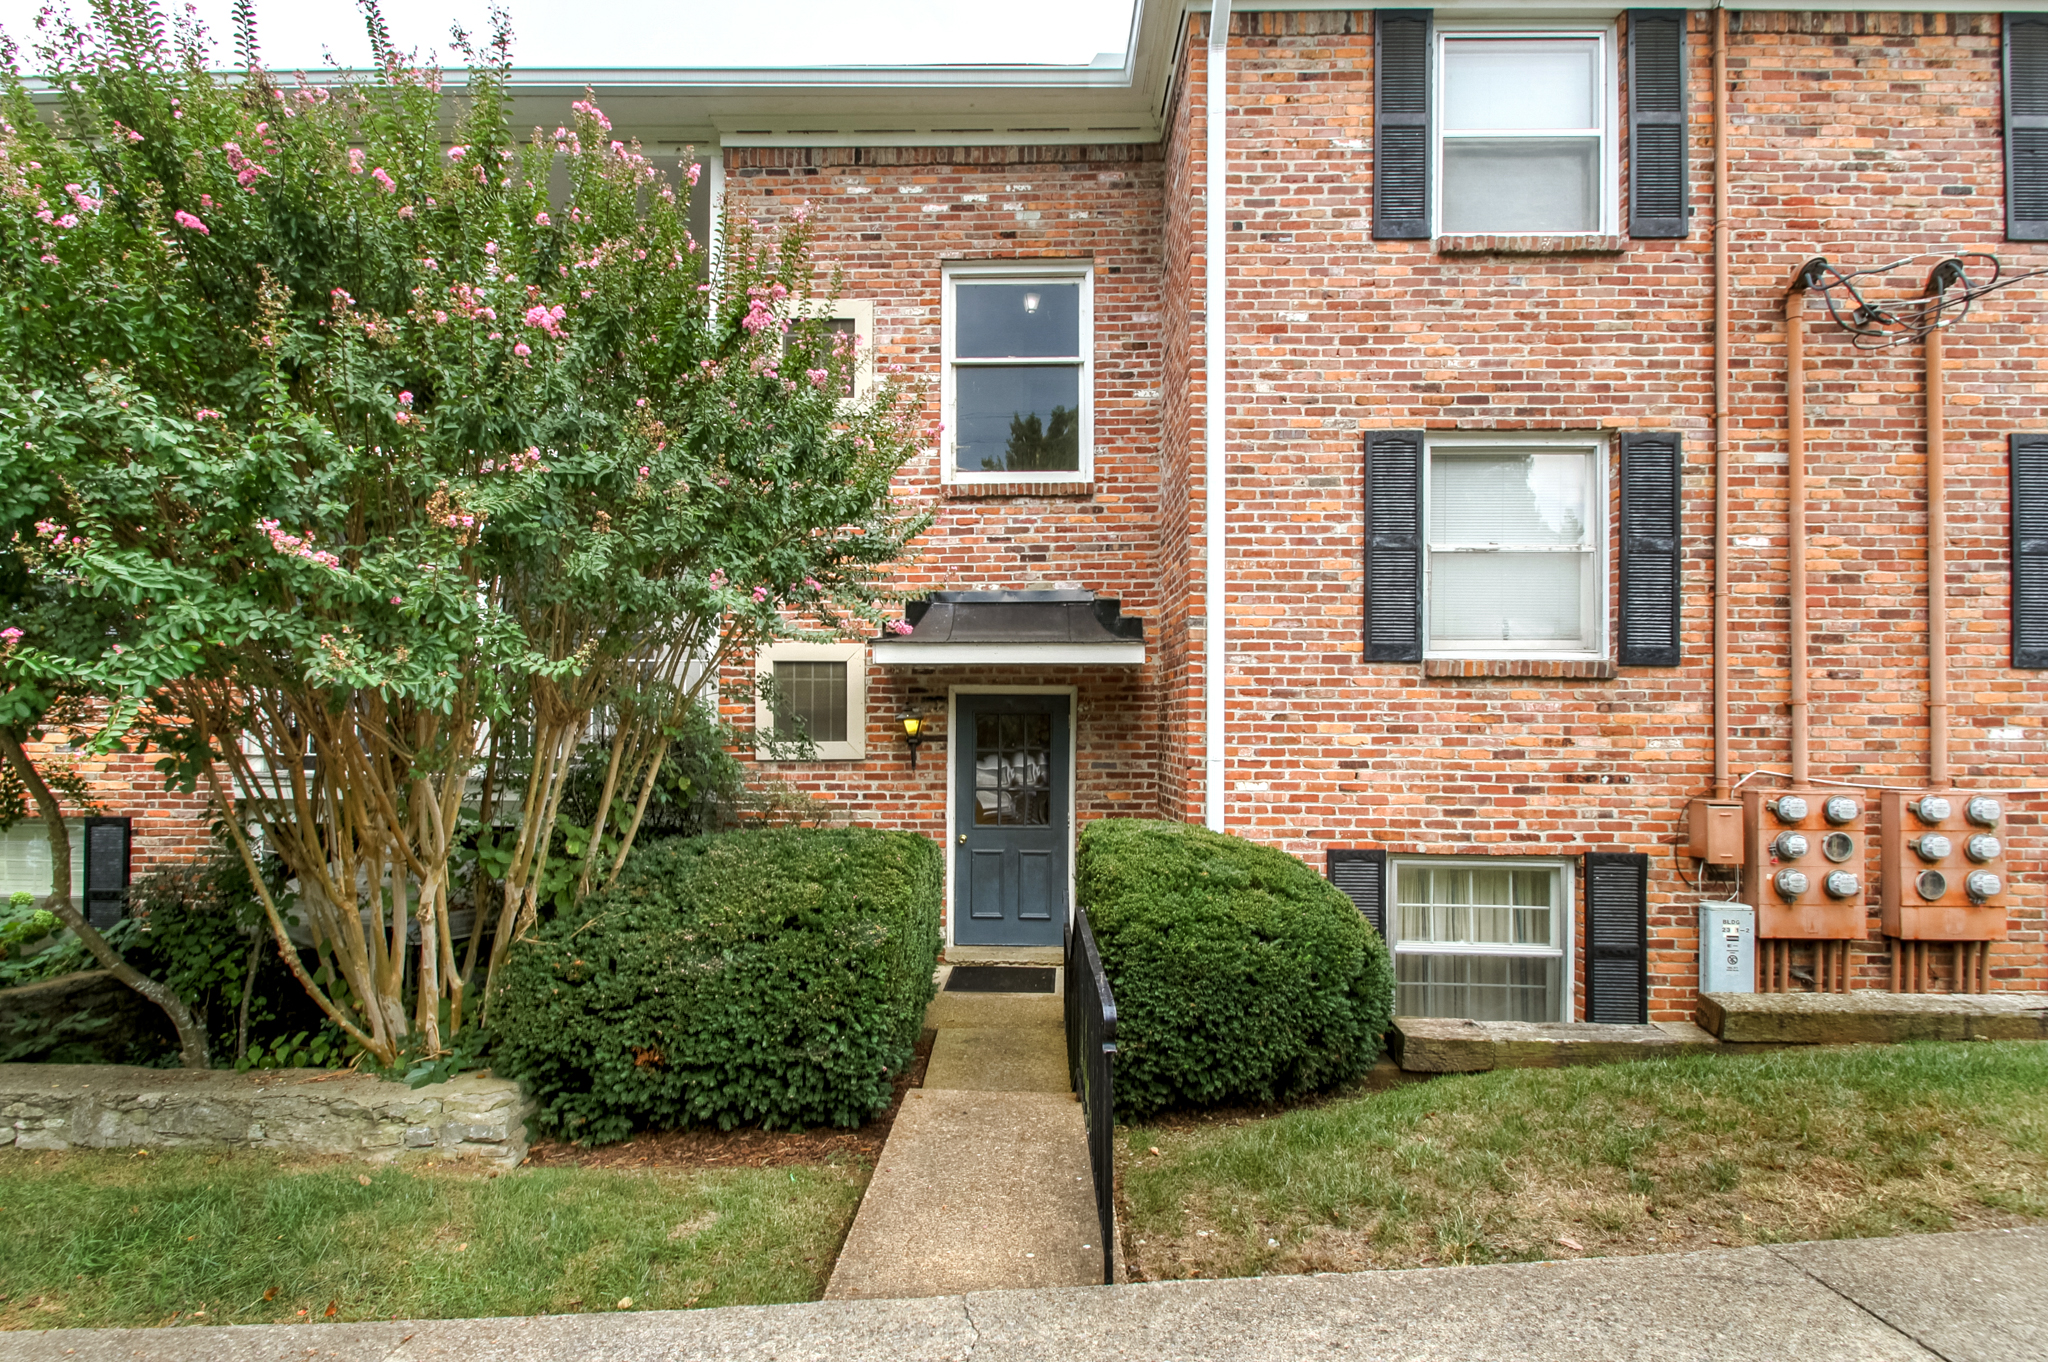 Single Family Home for Sale at Fantastic Condo in Highly Sought After Location 5025 Hillsboro Pike Nashville, Tennessee, 37215 United States